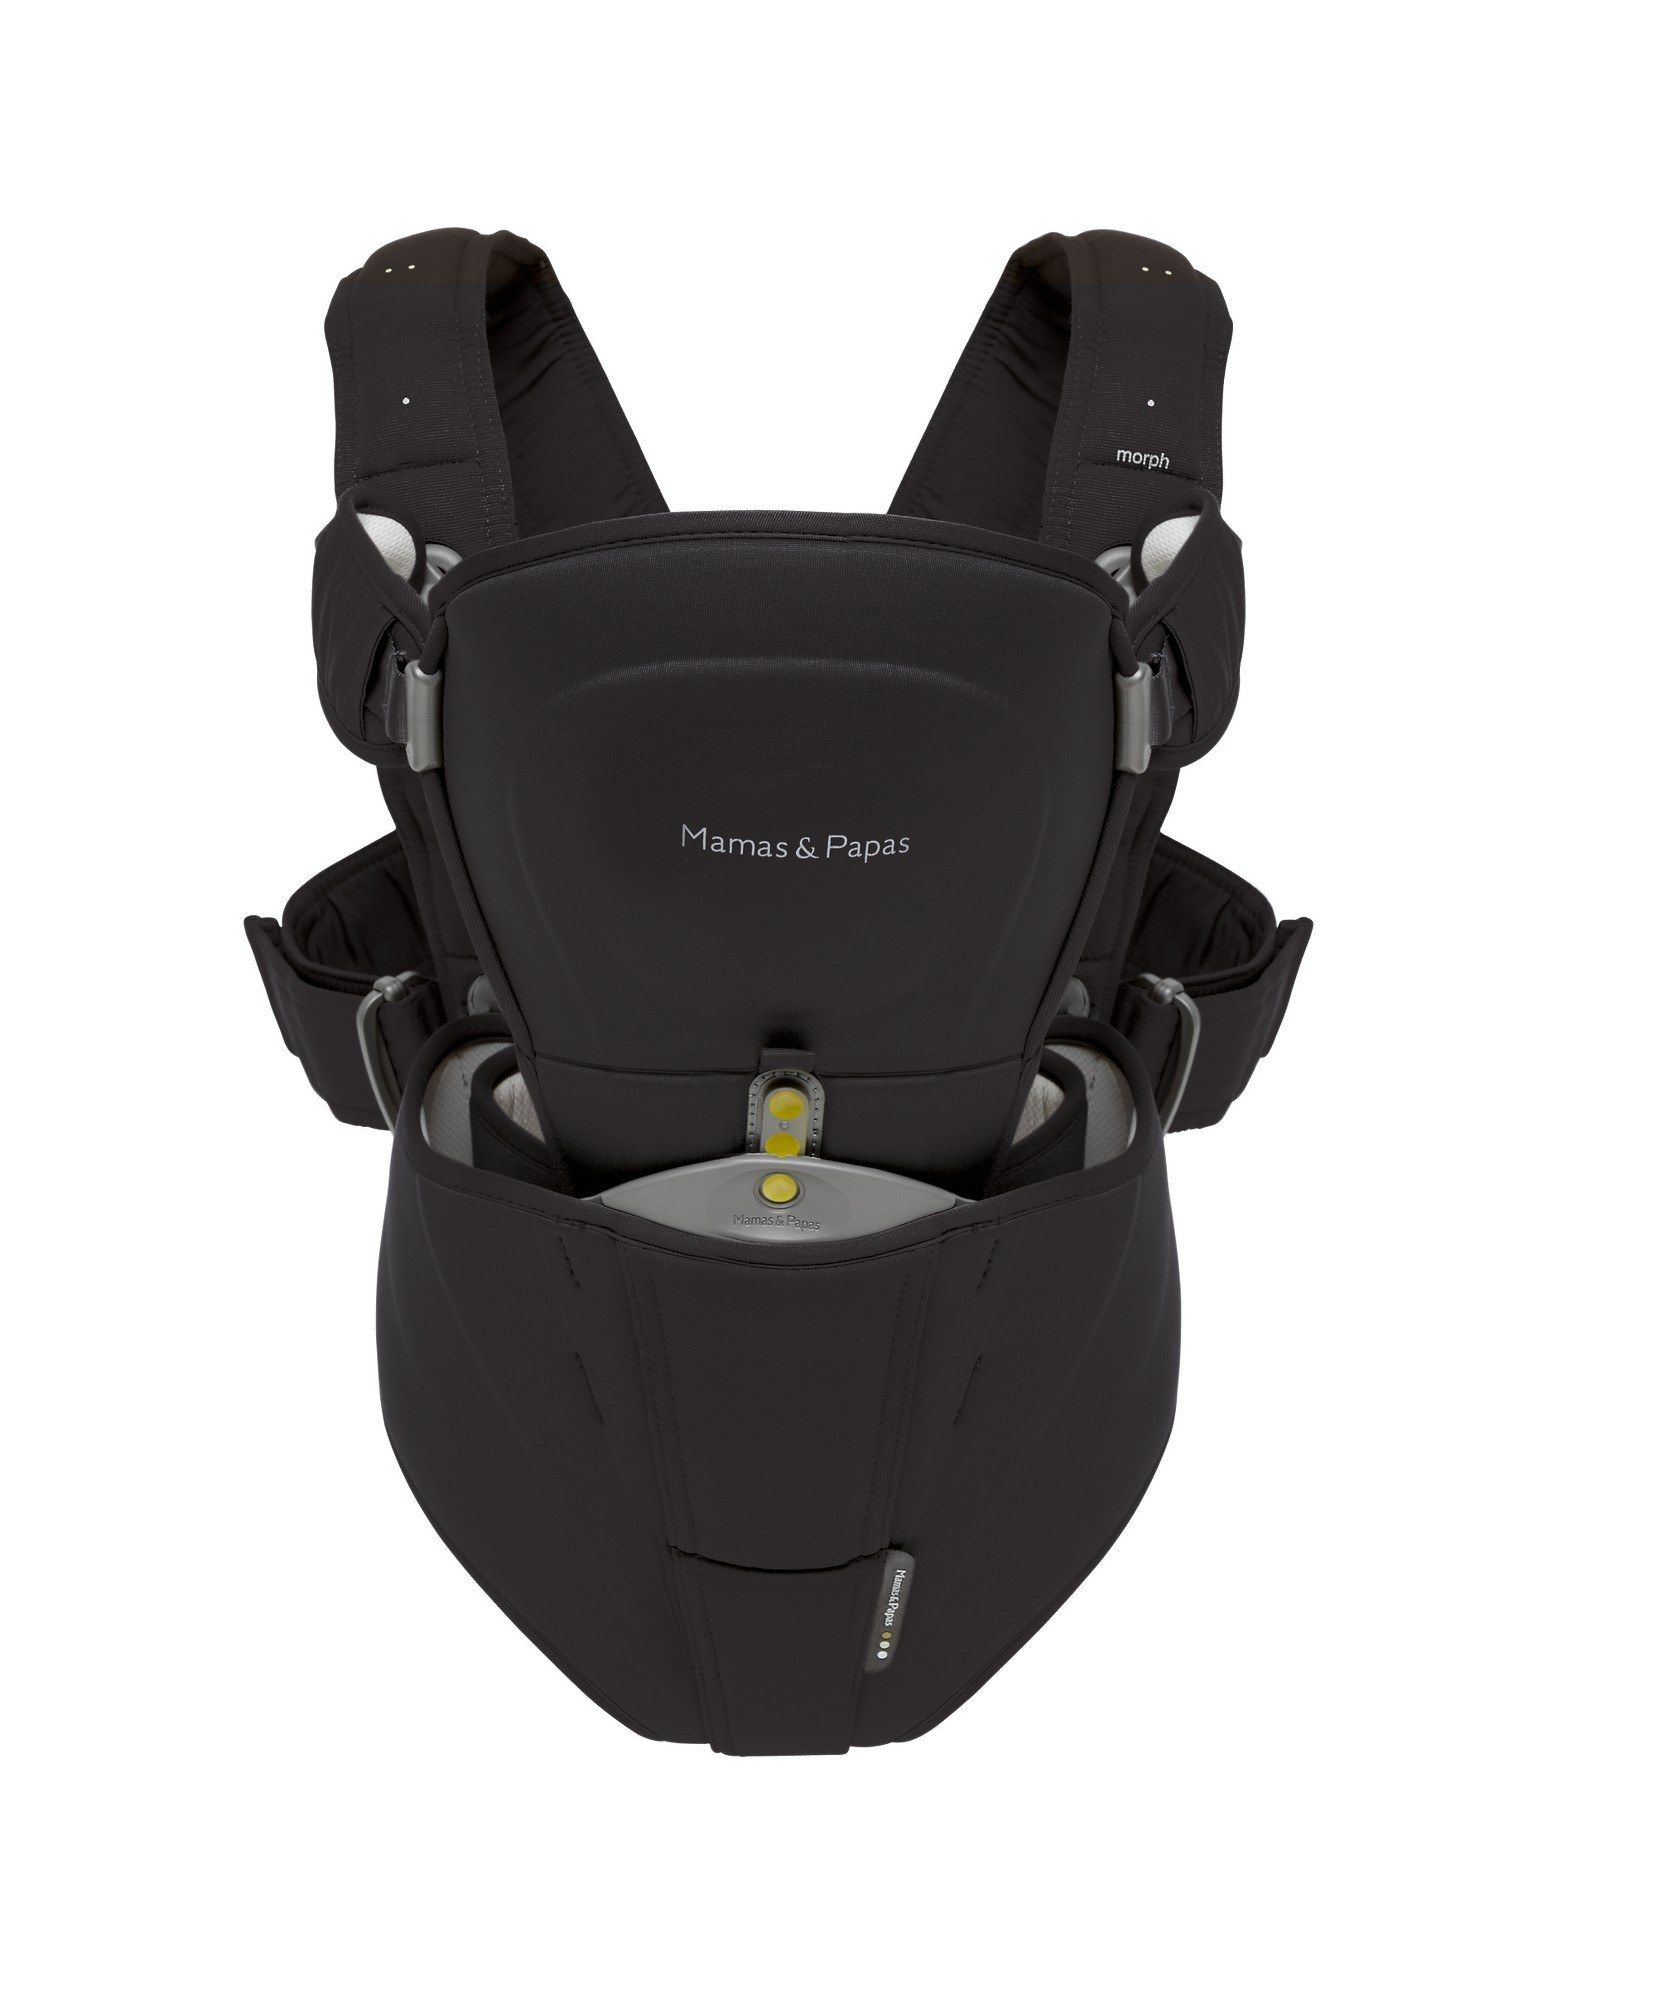 Morph Baby Carrier Black Jack Baby carrier, Mamas and